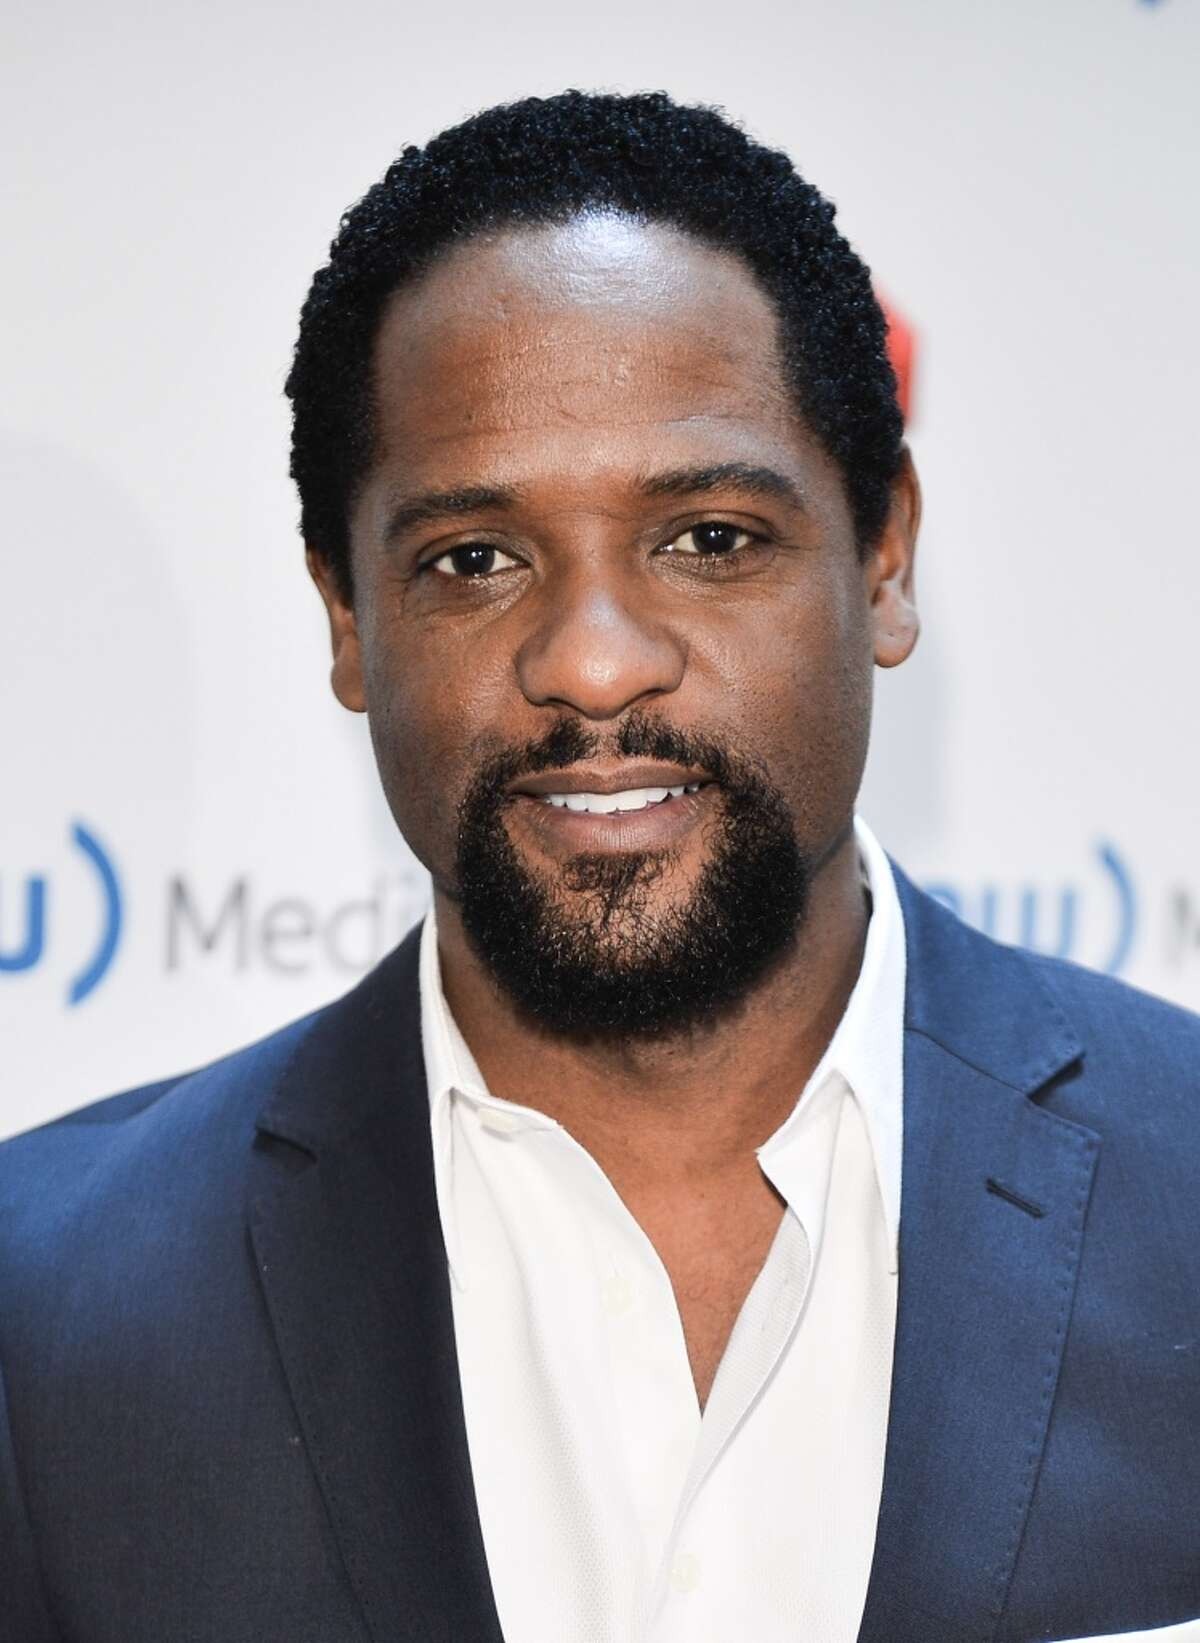 And Blair Underwood in 2013.